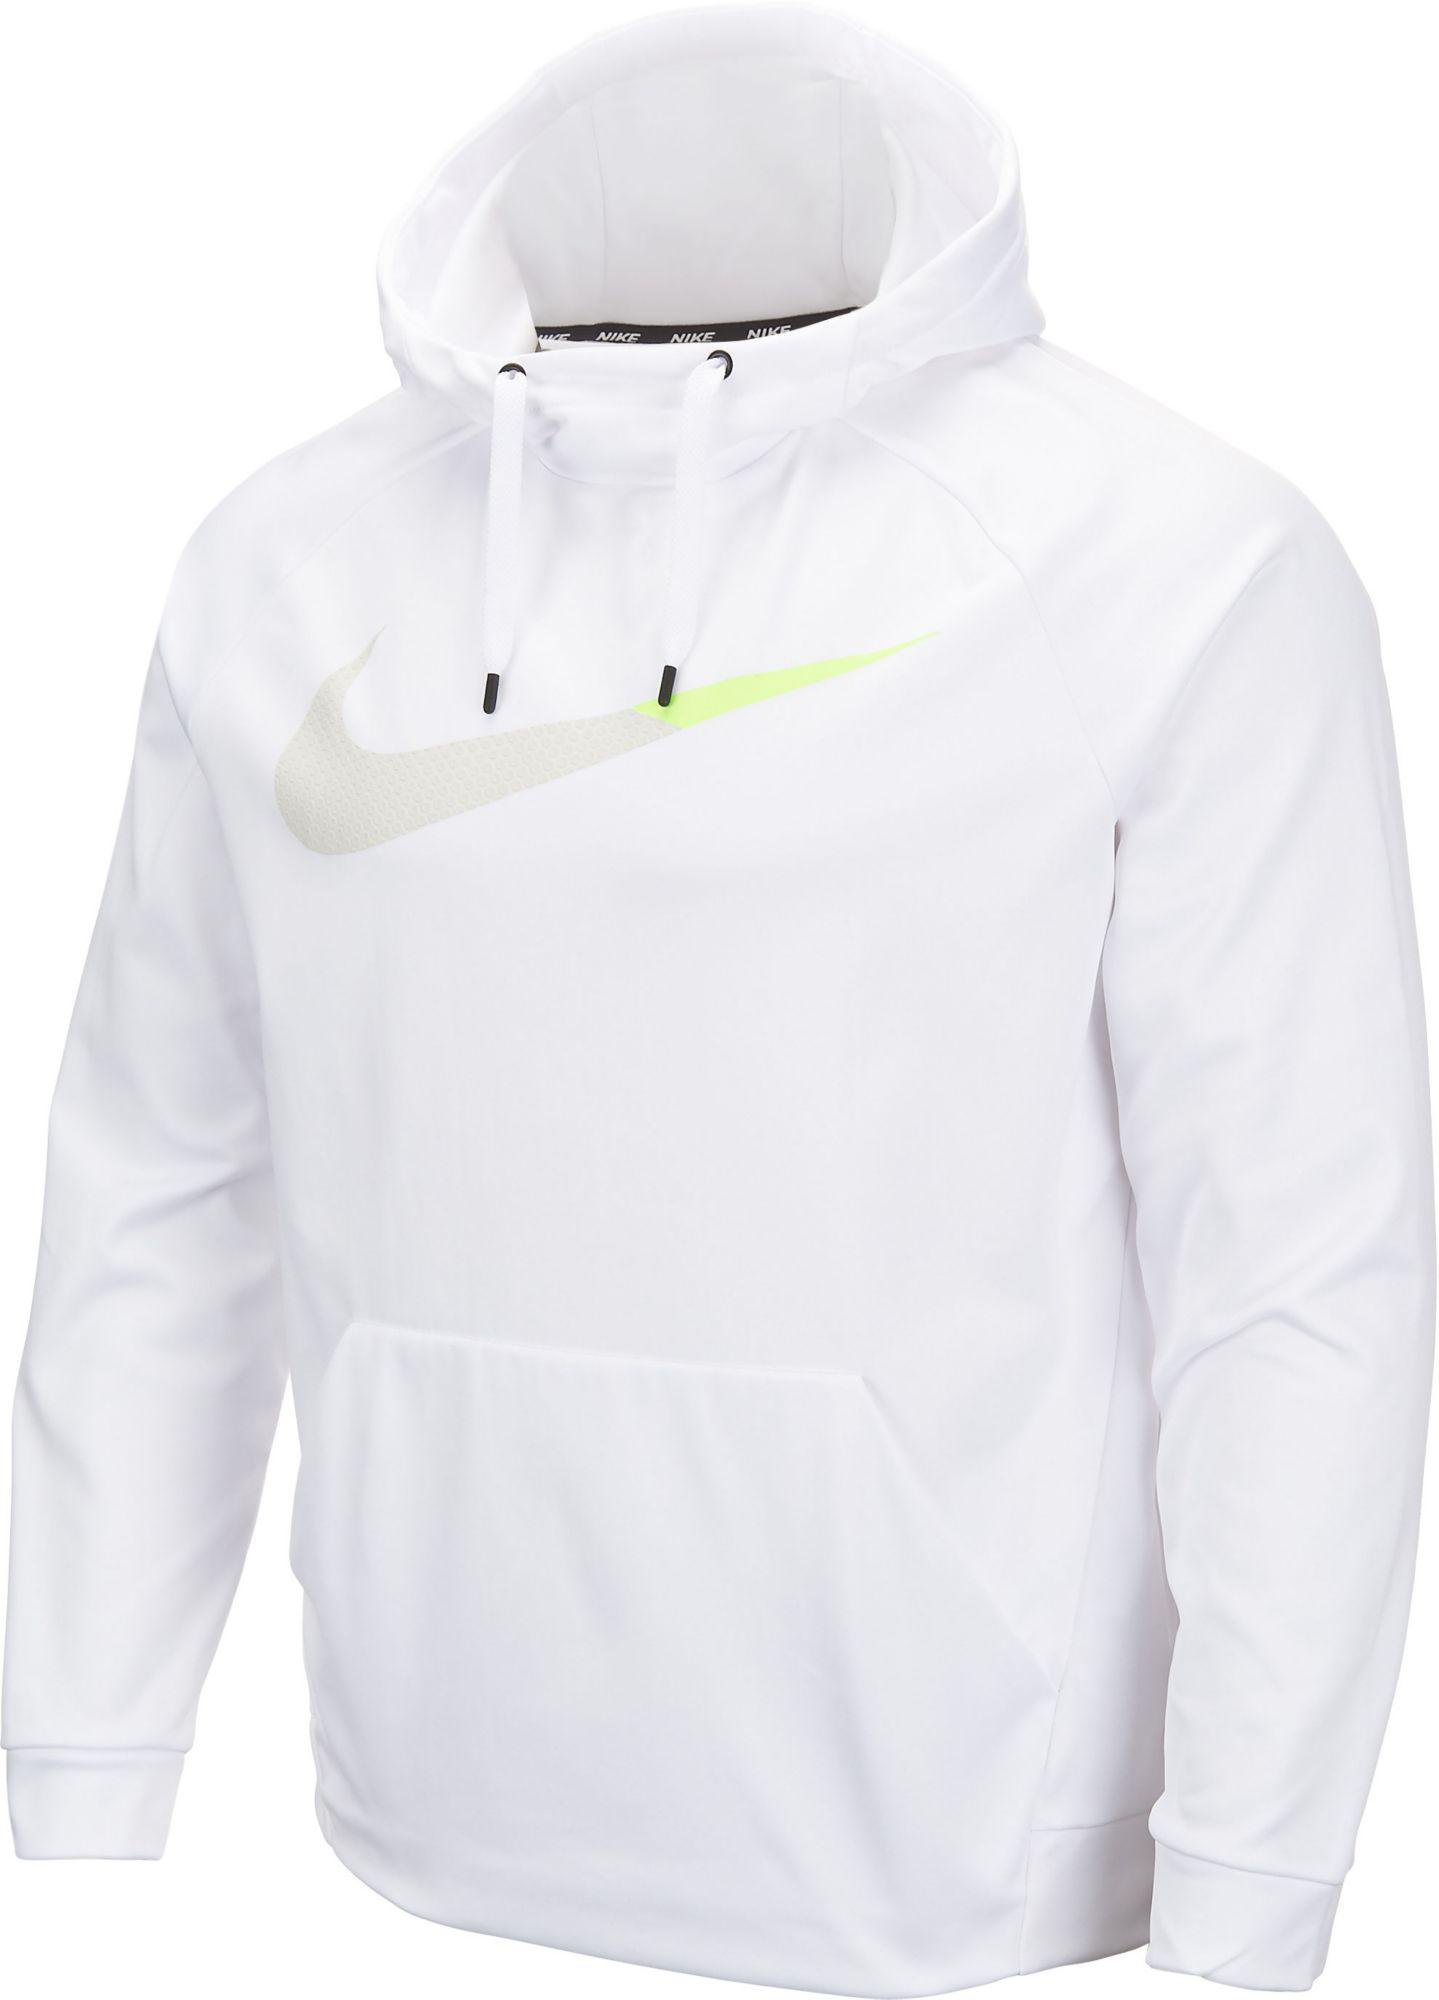 6f59a3c4ba0e66 Lyst - Nike Therma Graphic Hoodie in White for Men